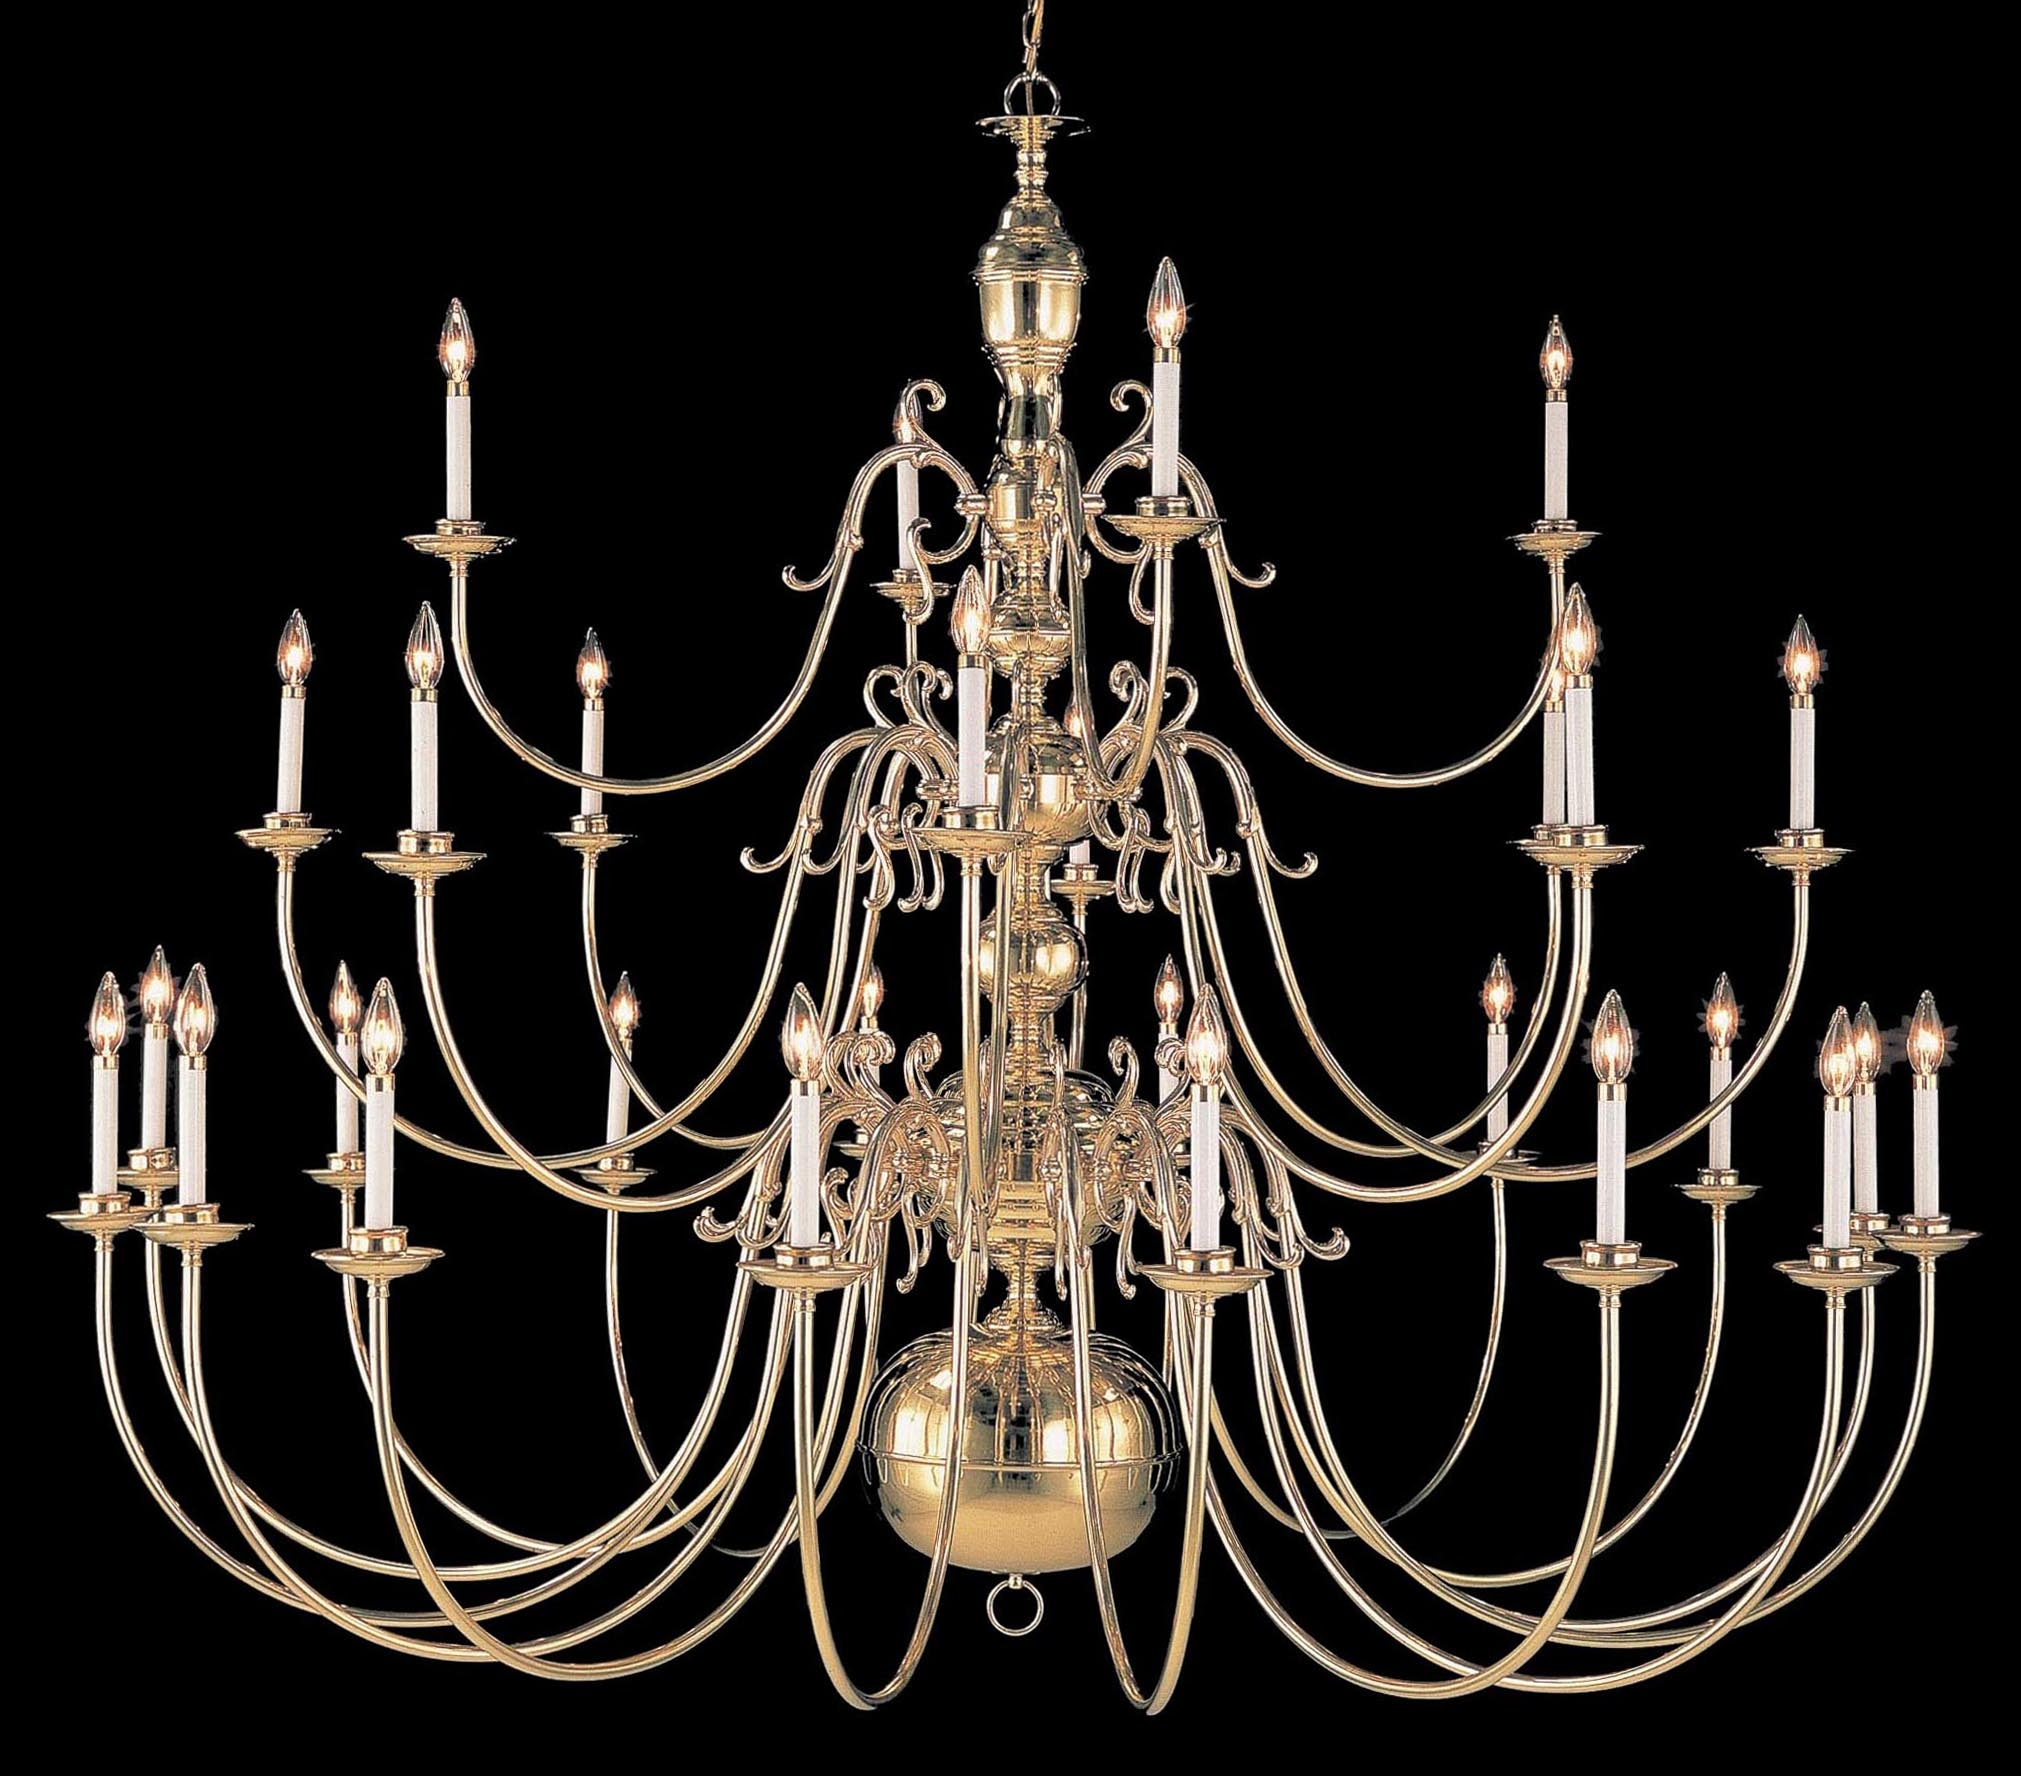 Largelighting Brassbronze Chandeliers Inside Large Bronze Chandelier (View 4 of 15)